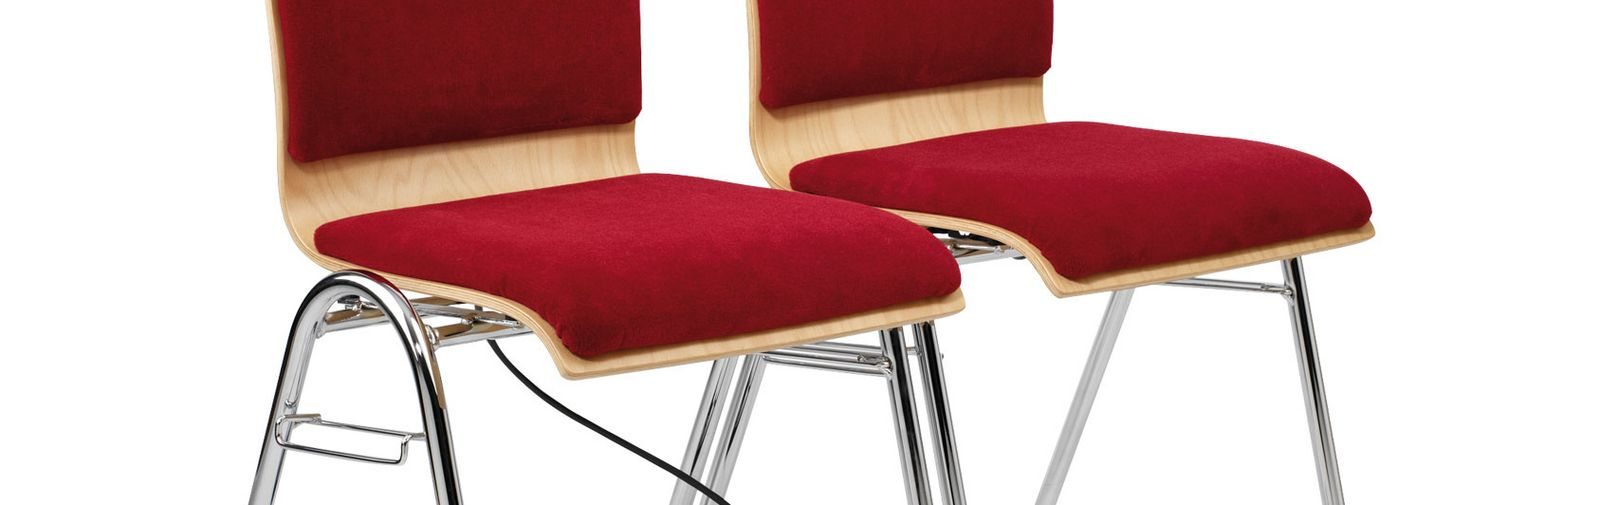 thermo chairs